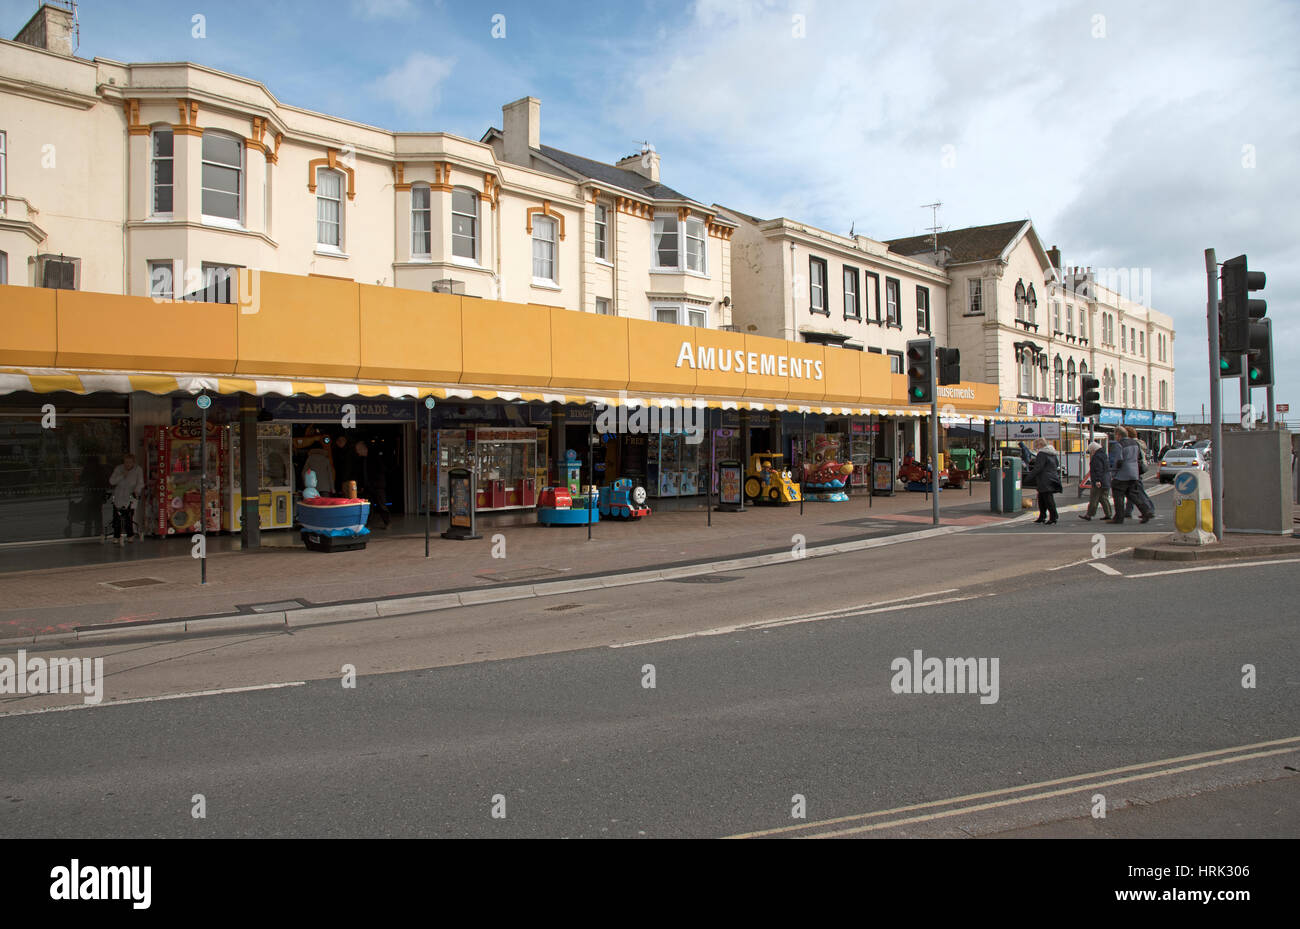 An amusement arcade in the seaside town of Dawlish South Devon England UK - Stock Image